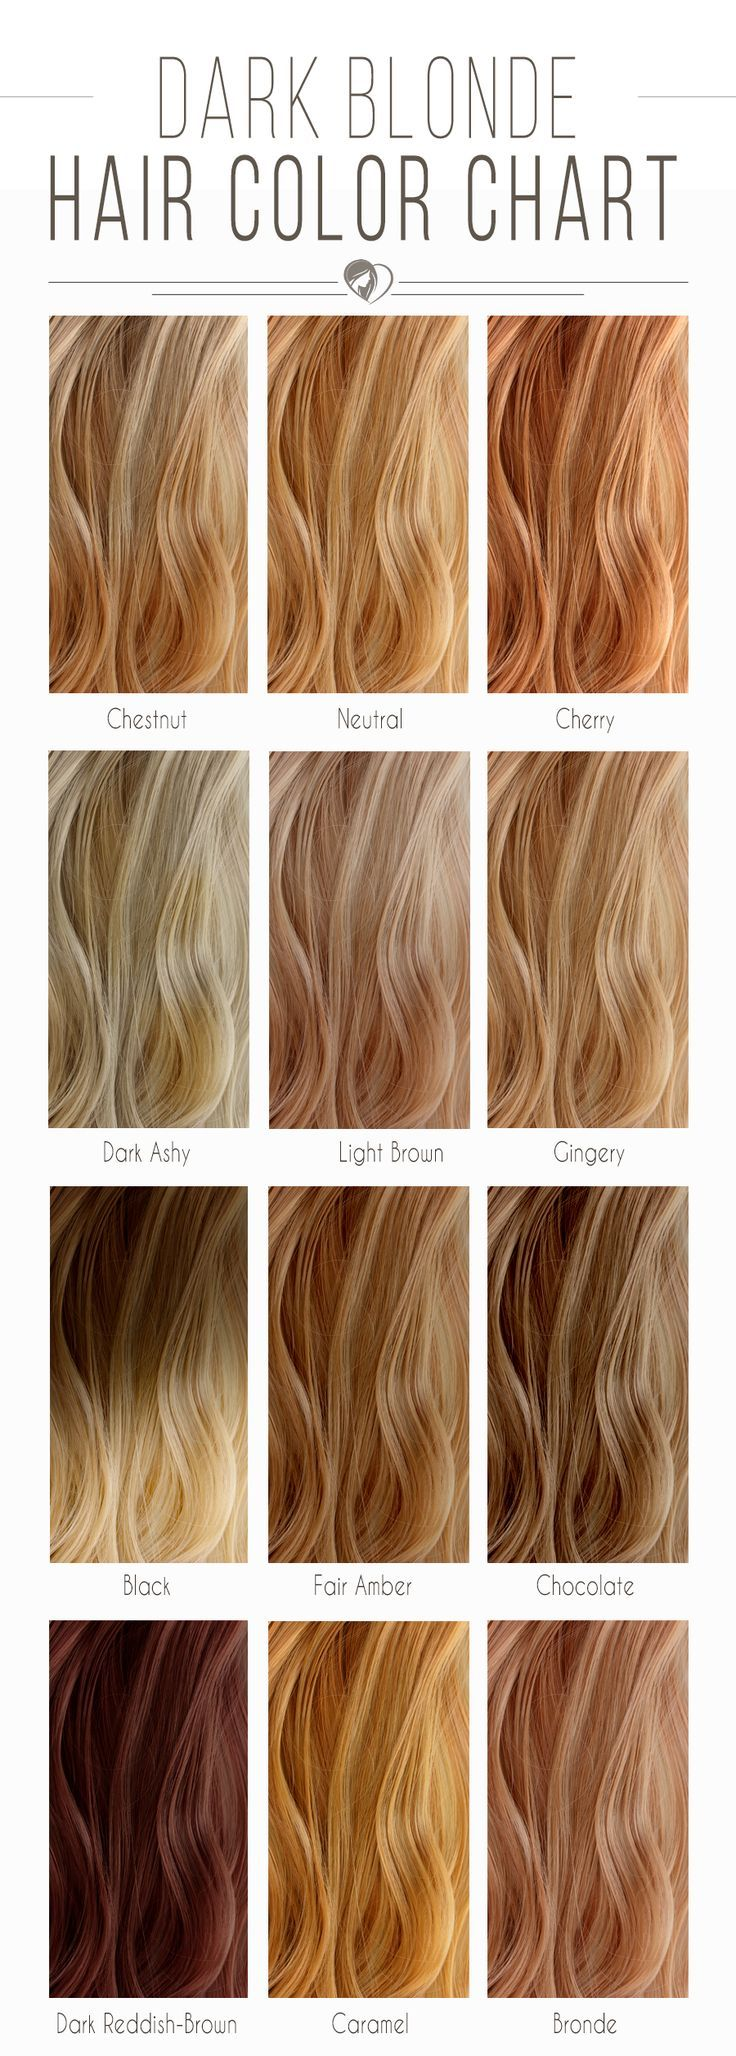 Blonde Hair Color Chart To Find The Right Shade For You Balayage